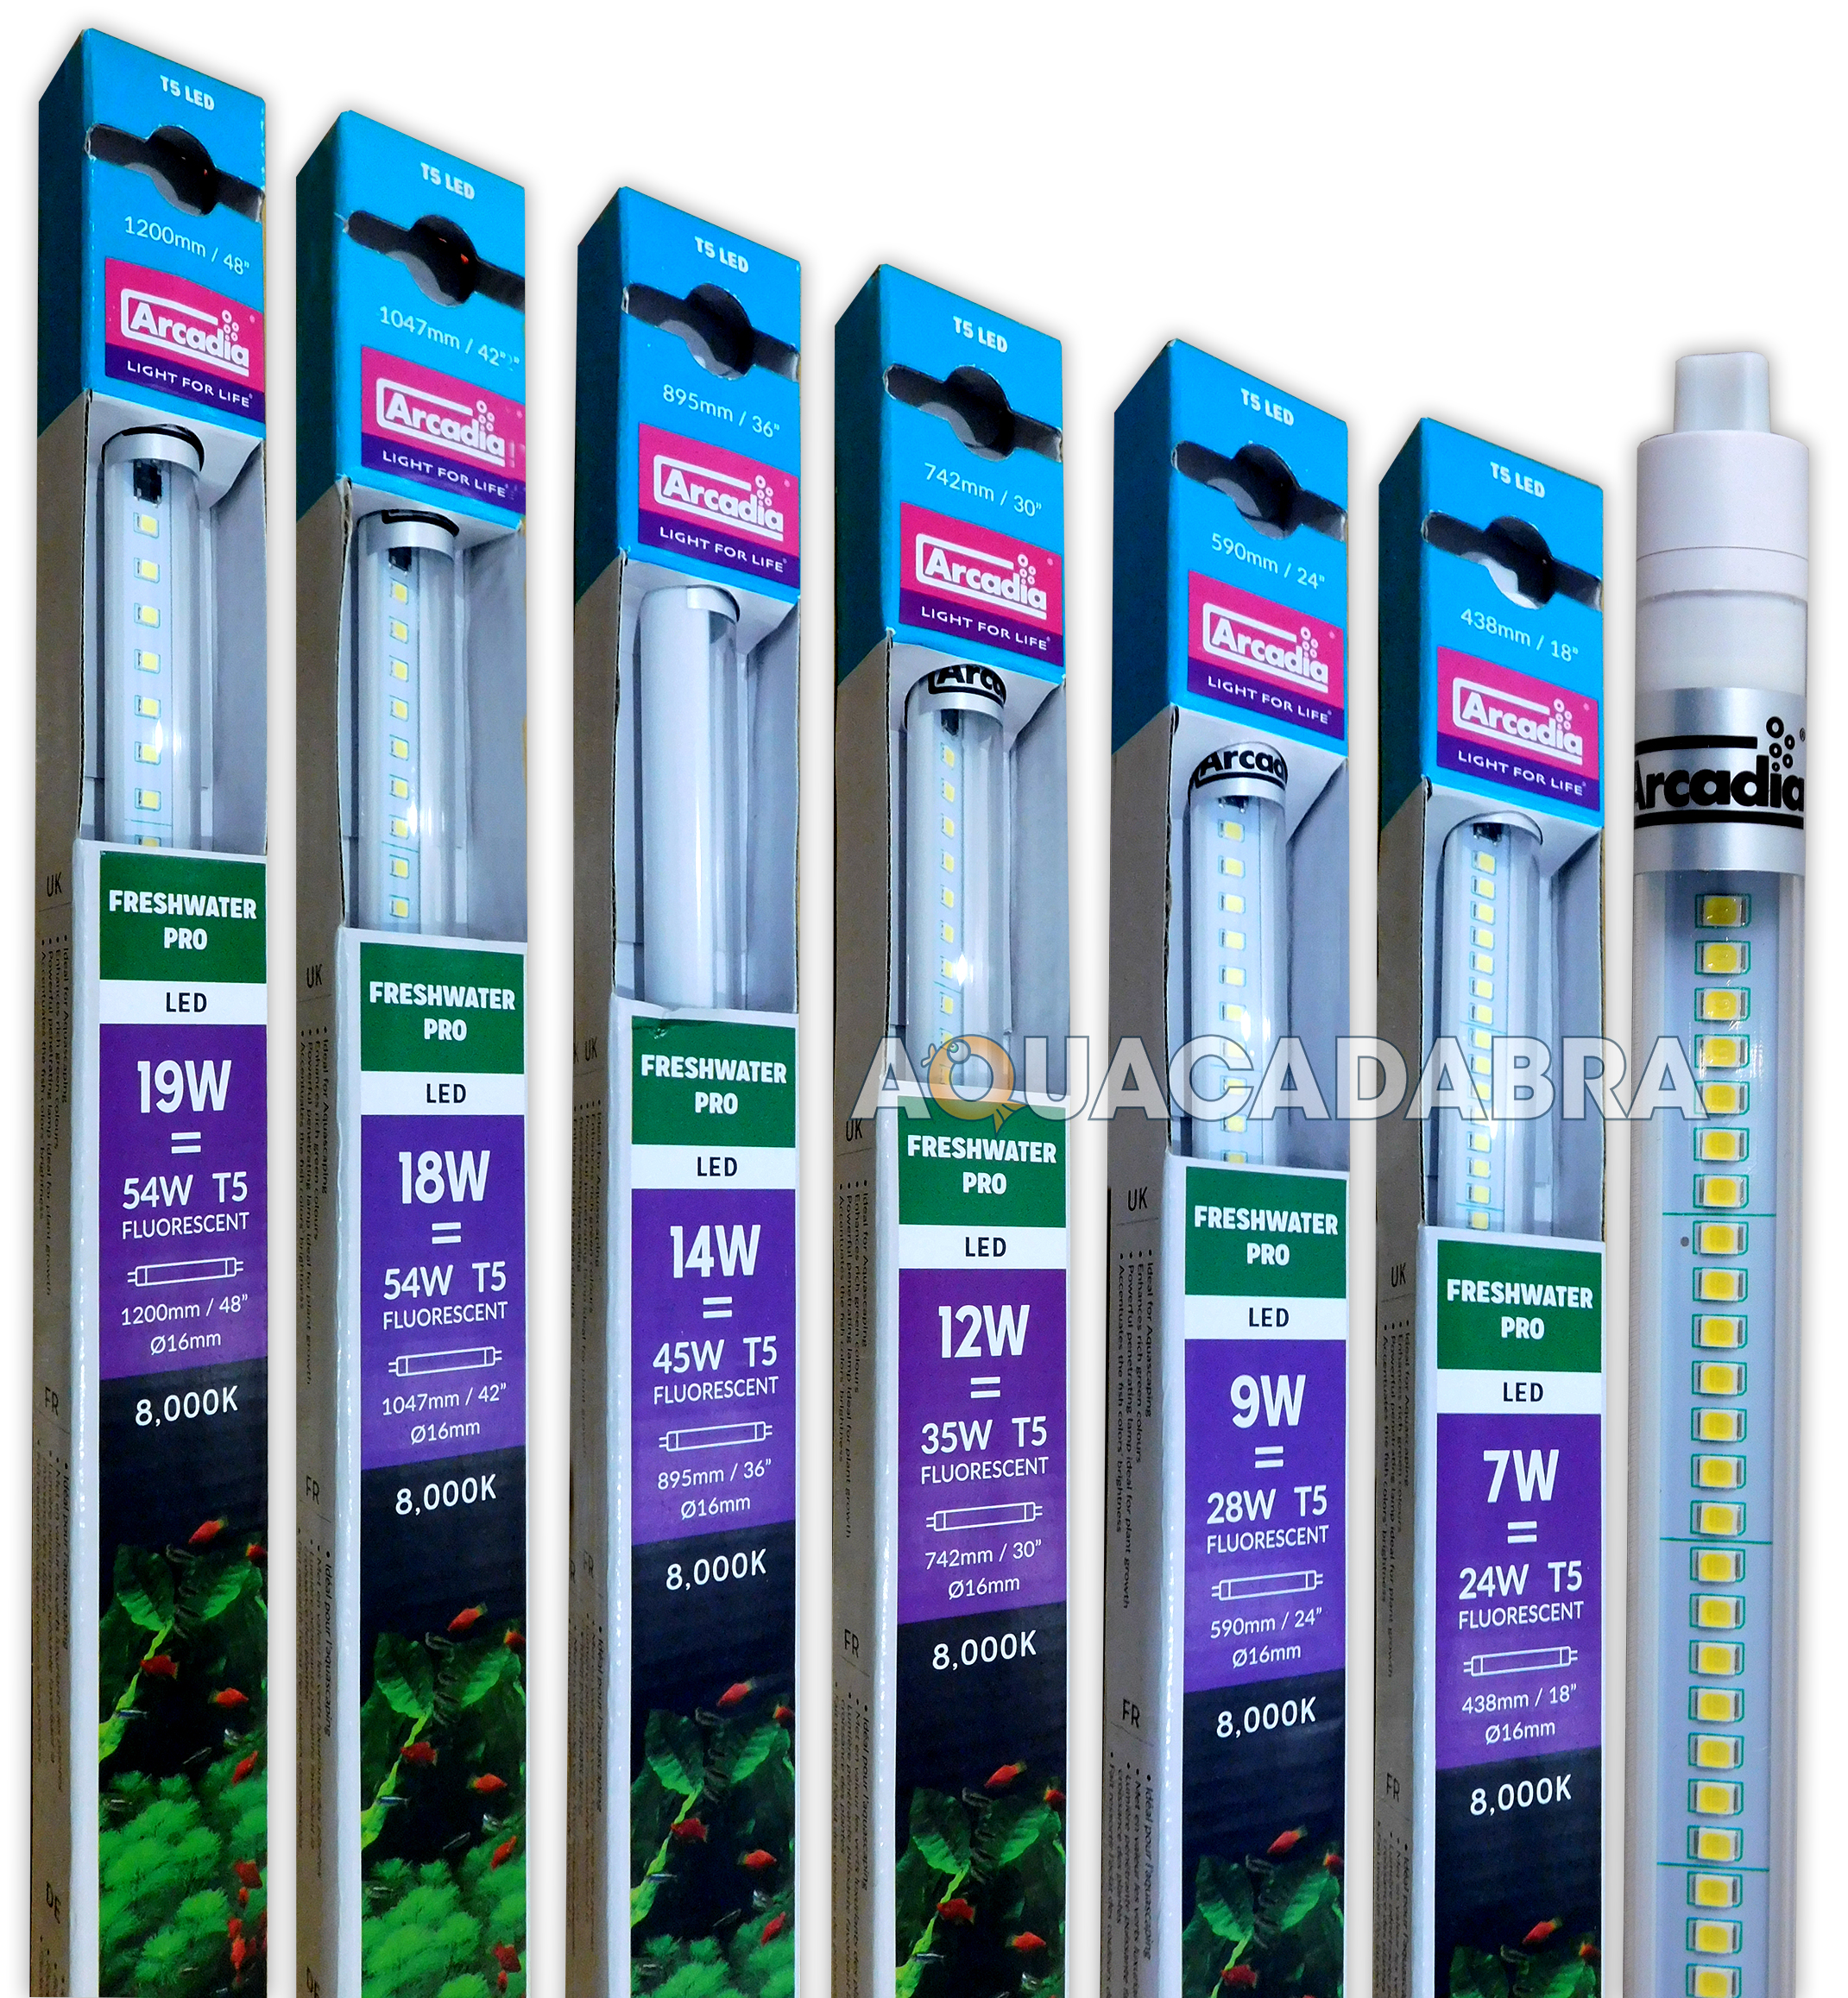 arcadia t5 led lamp bulb tubes lighting juwel sizes aquarium fish tank. Black Bedroom Furniture Sets. Home Design Ideas